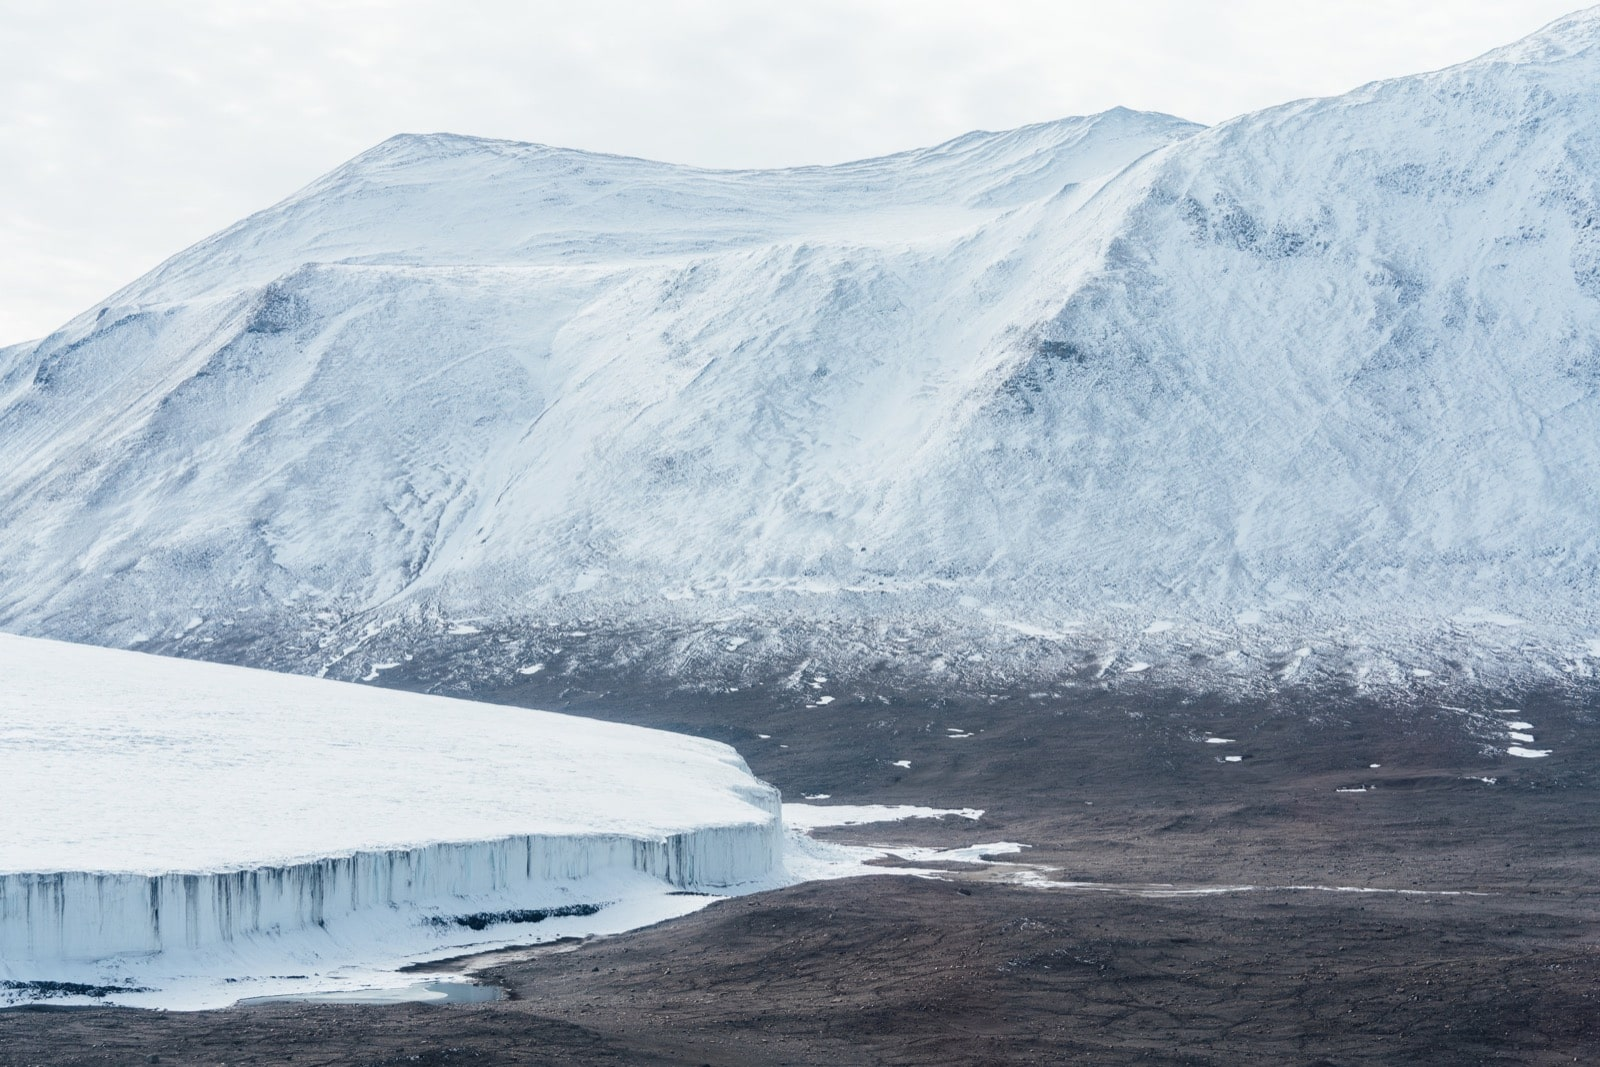 a beautiful landscape shot of white, baby blue capped mountains. below at the base of the mountain is a large glacier